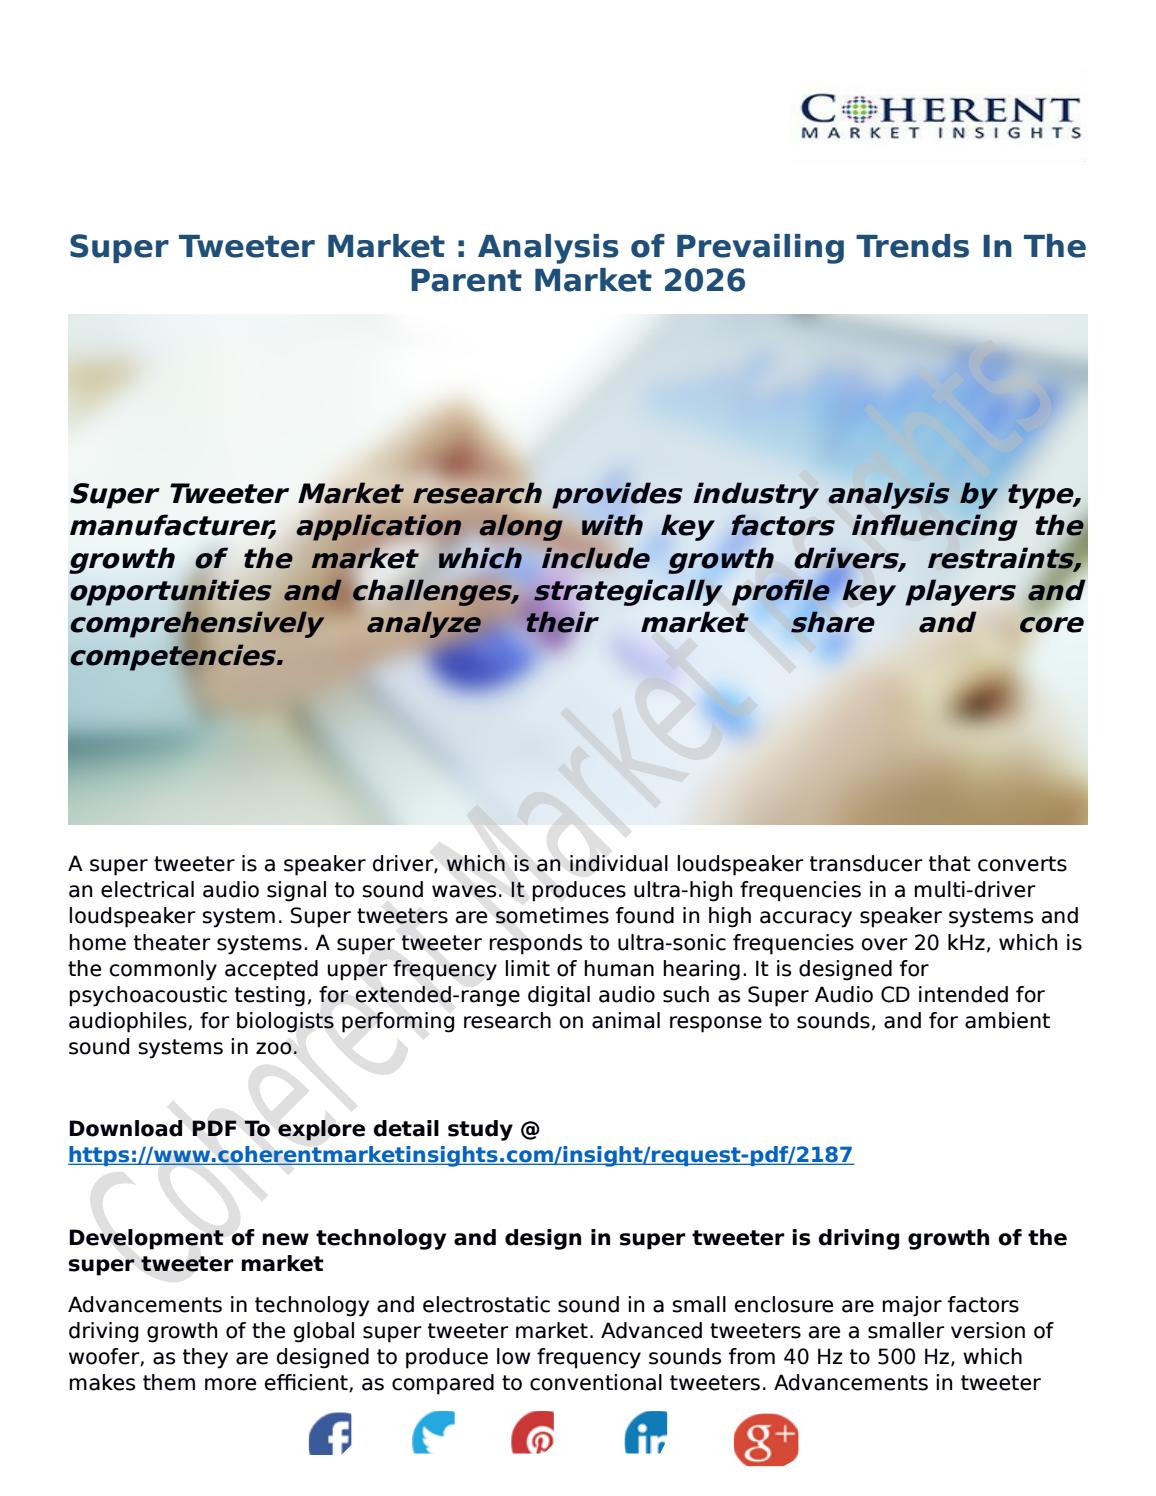 Super Tweeter Market : Analysis of Prevailing Trends In The Parent